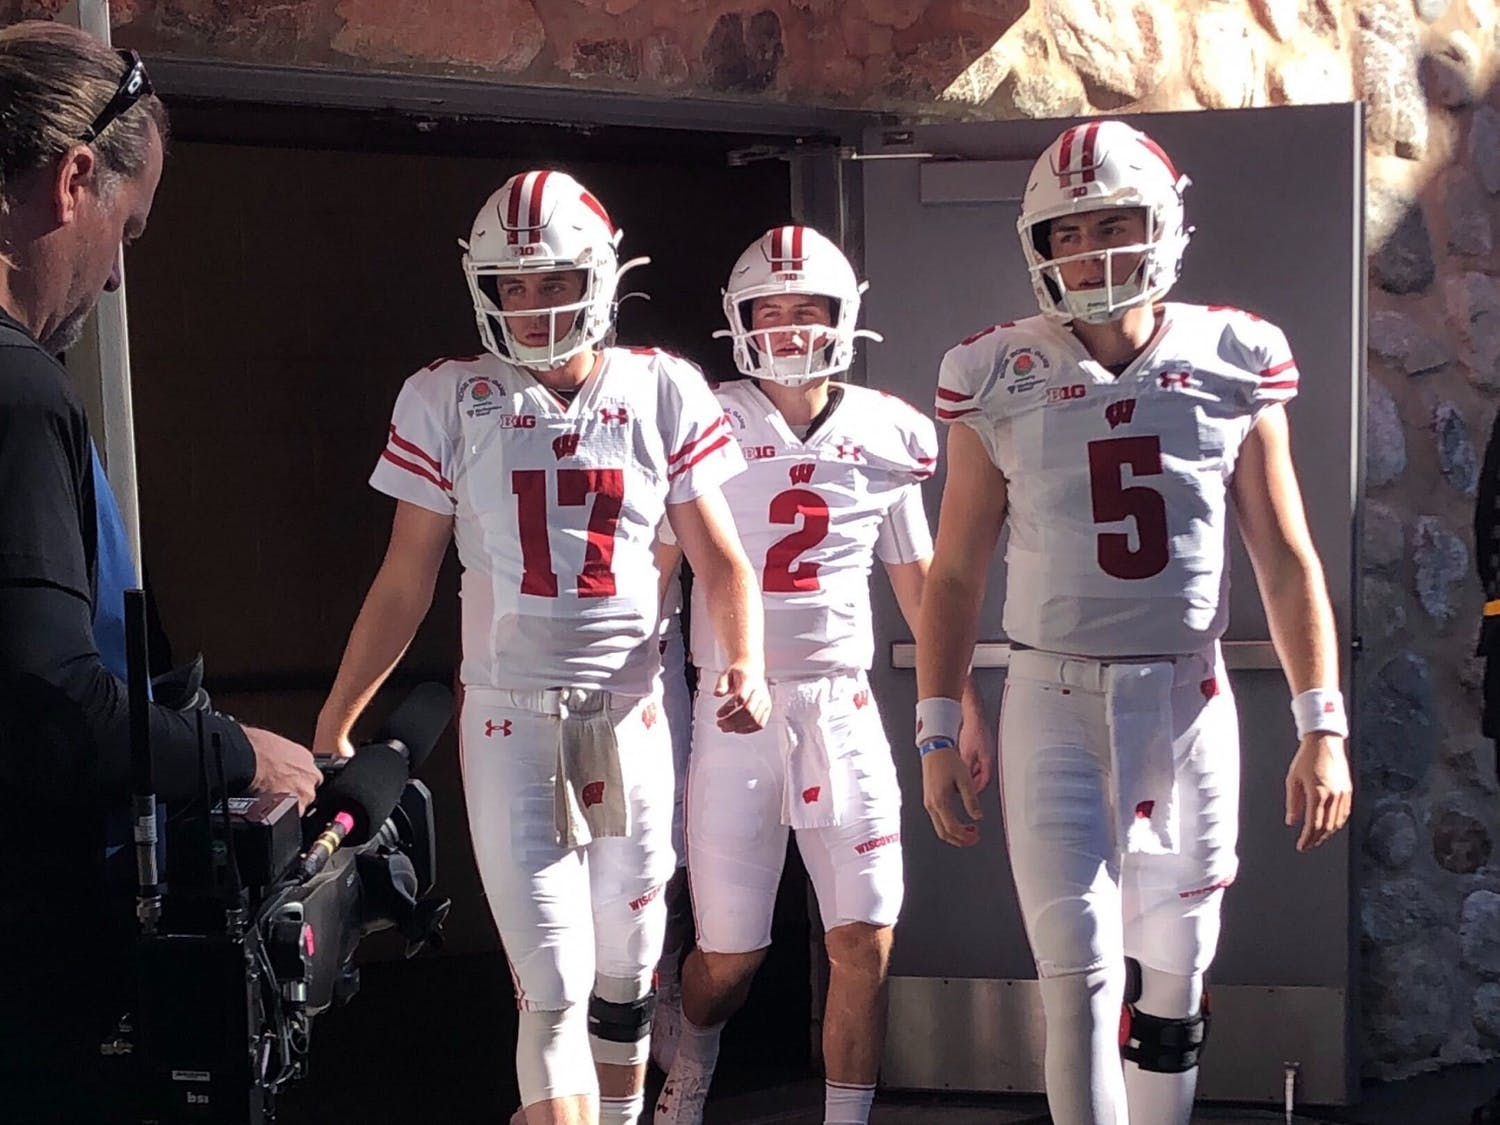 Wisconsin's quarterback room. Left to right: Jack Coan, Chase Wolf, and Graham Mertz.